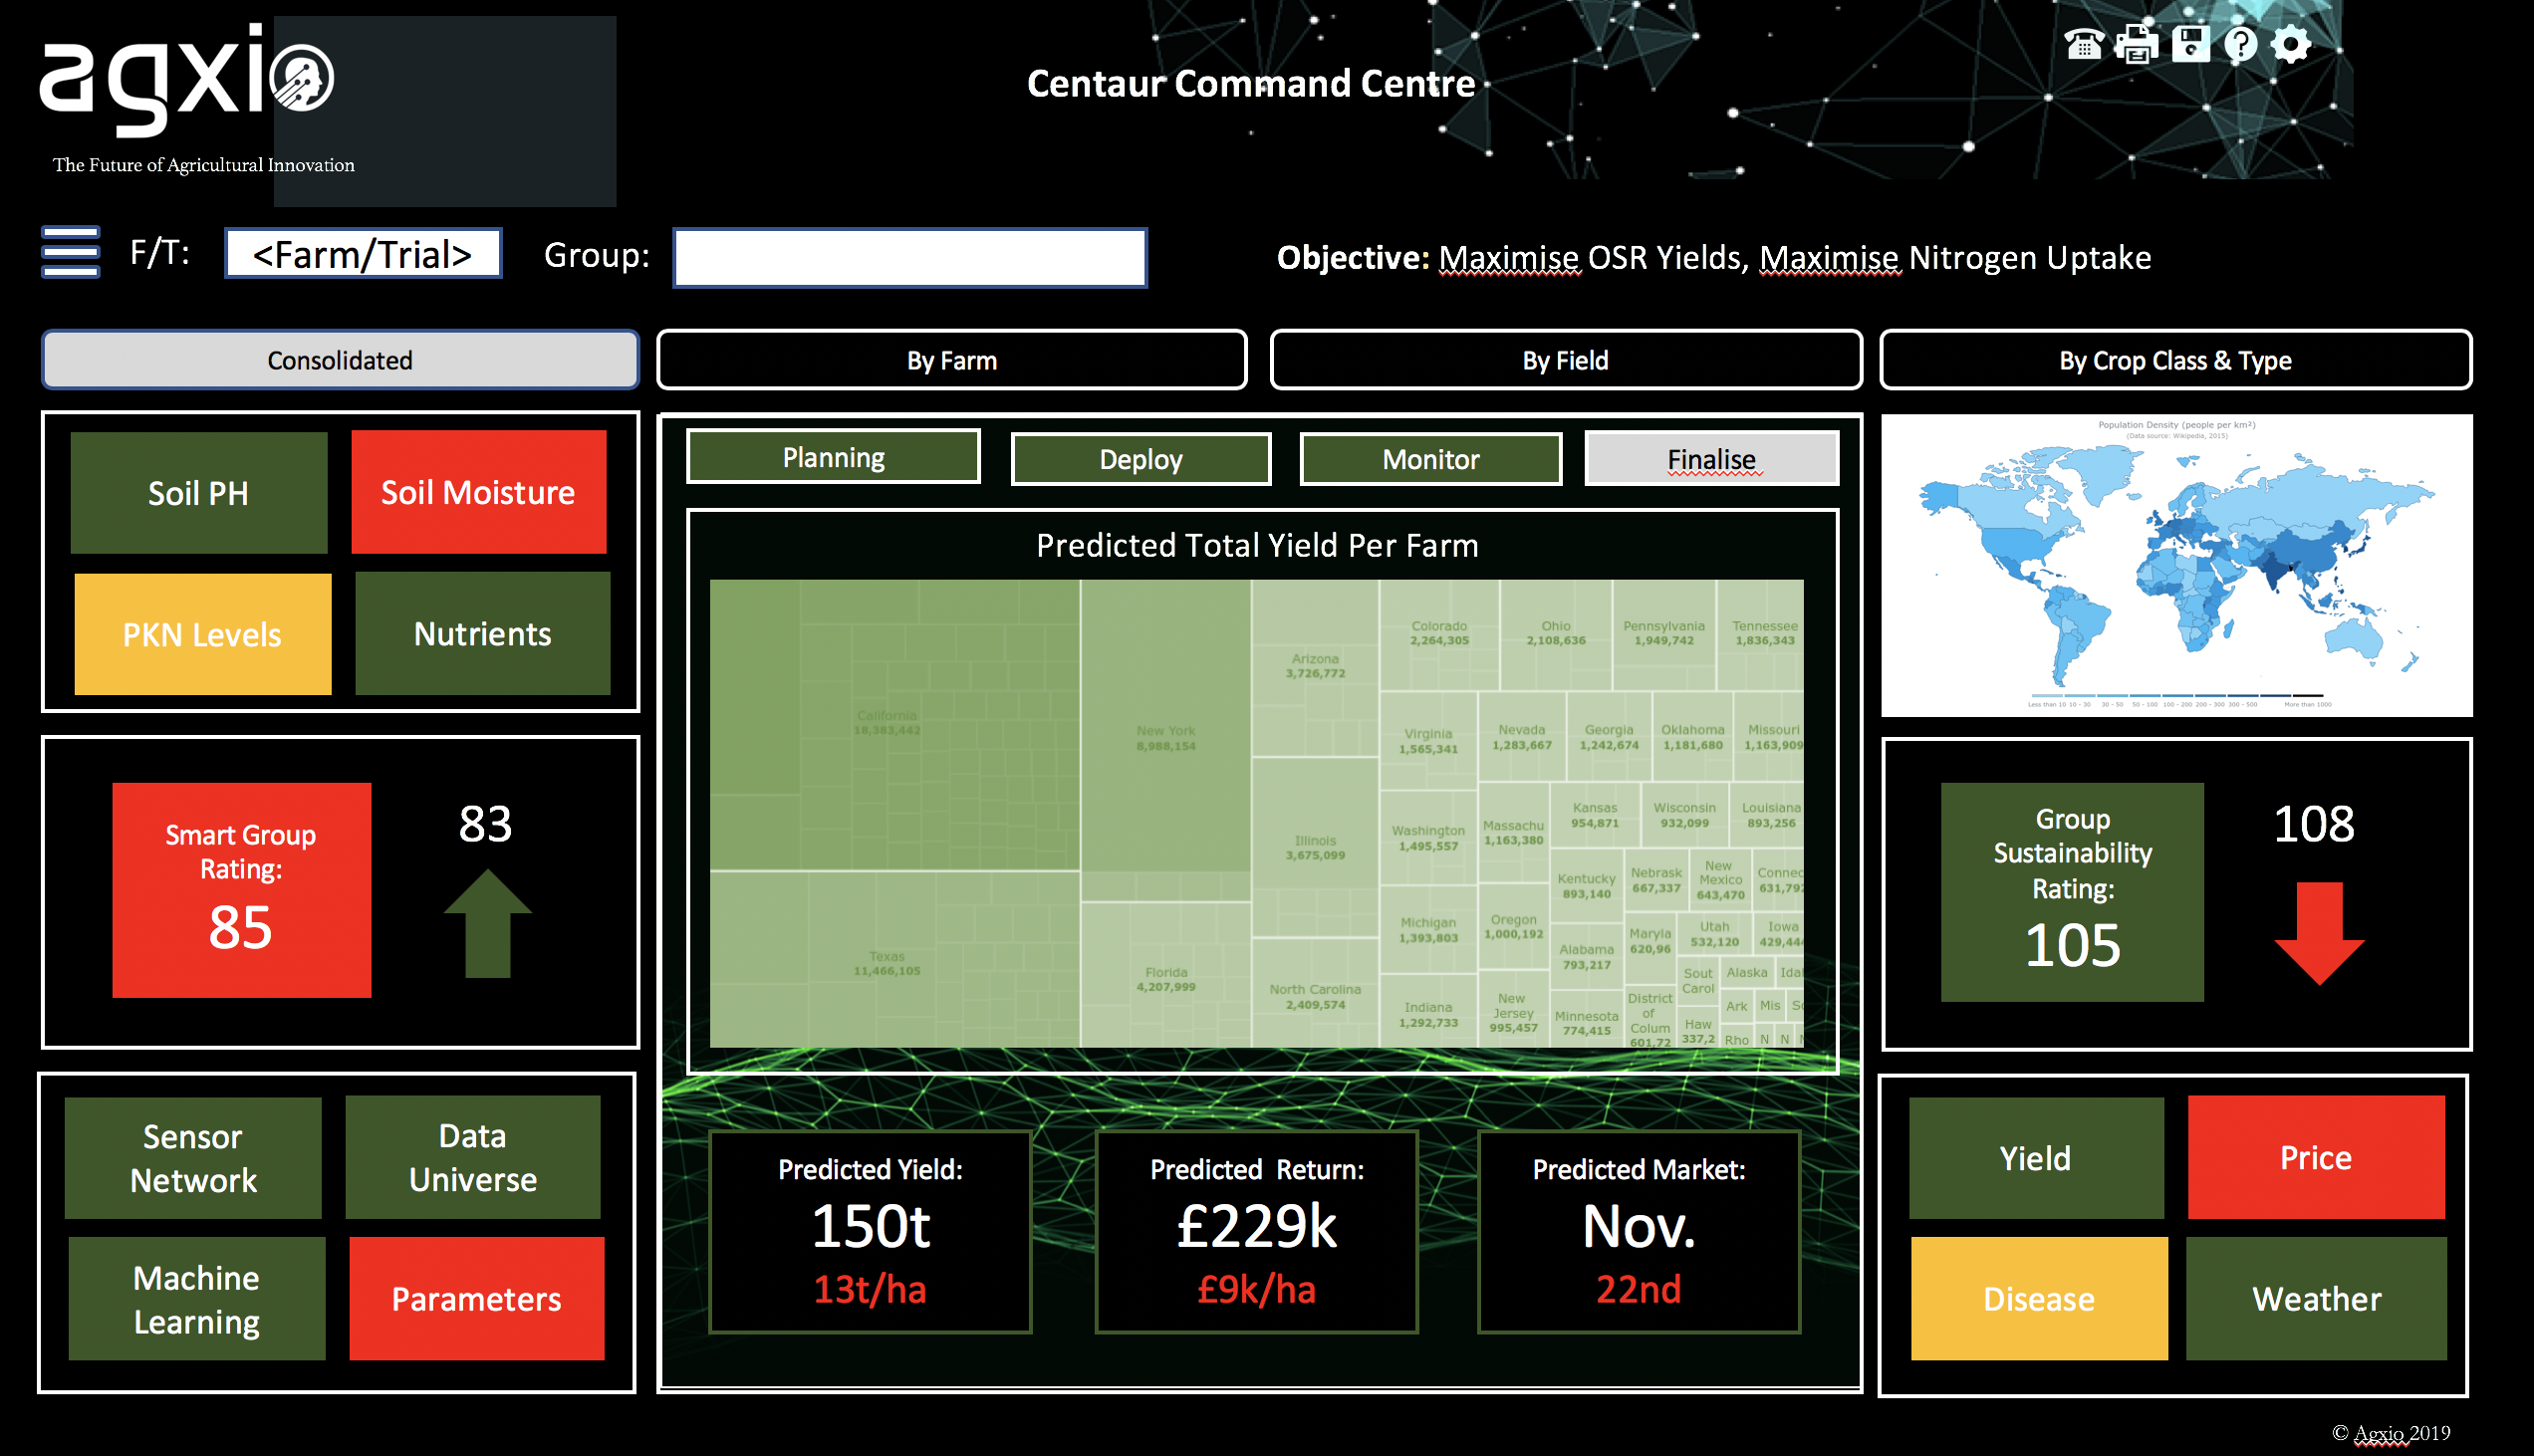 Screen of the Agxio Centaur central command platform.